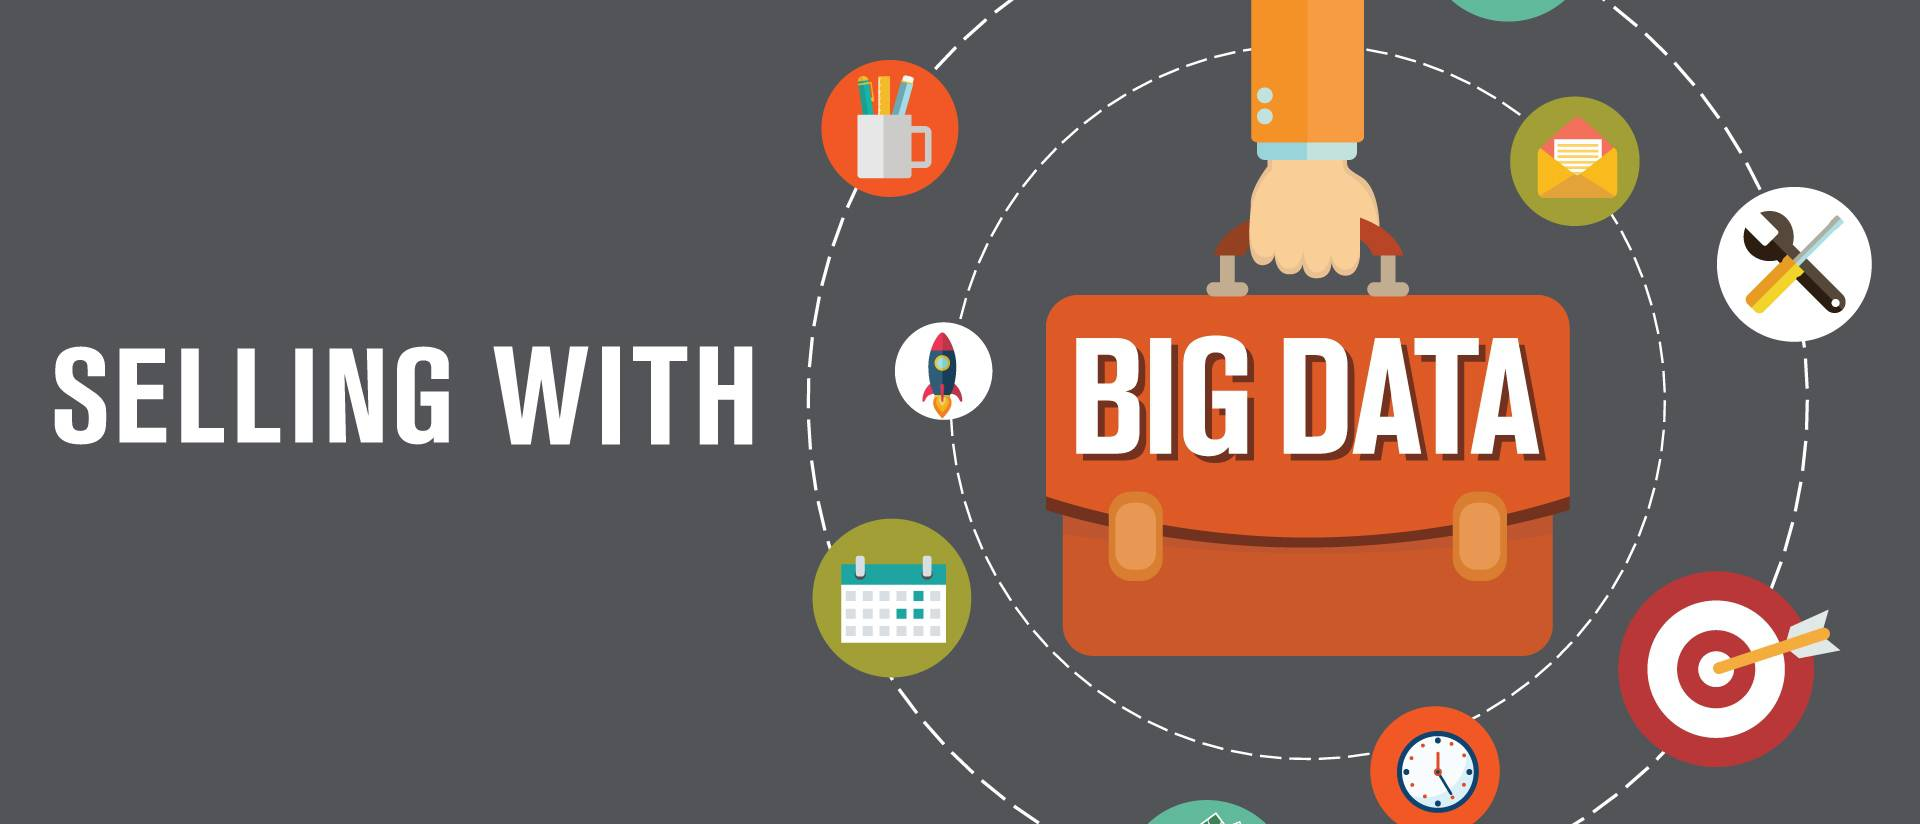 Big Data marketing panel to be held March 31